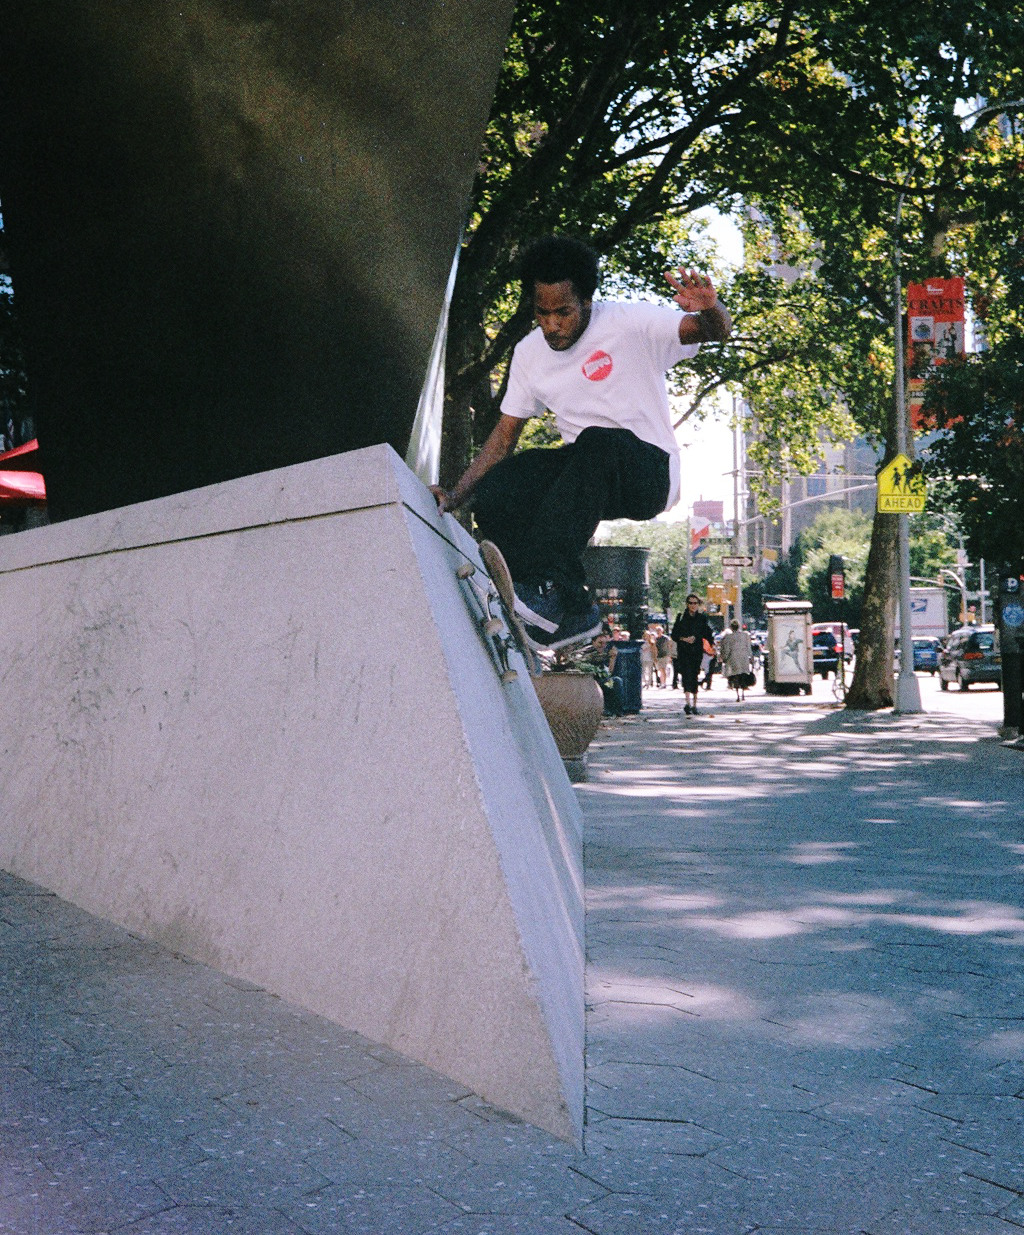 F-side wall ride at Lincoln Center, NYC-Photo: Stewart